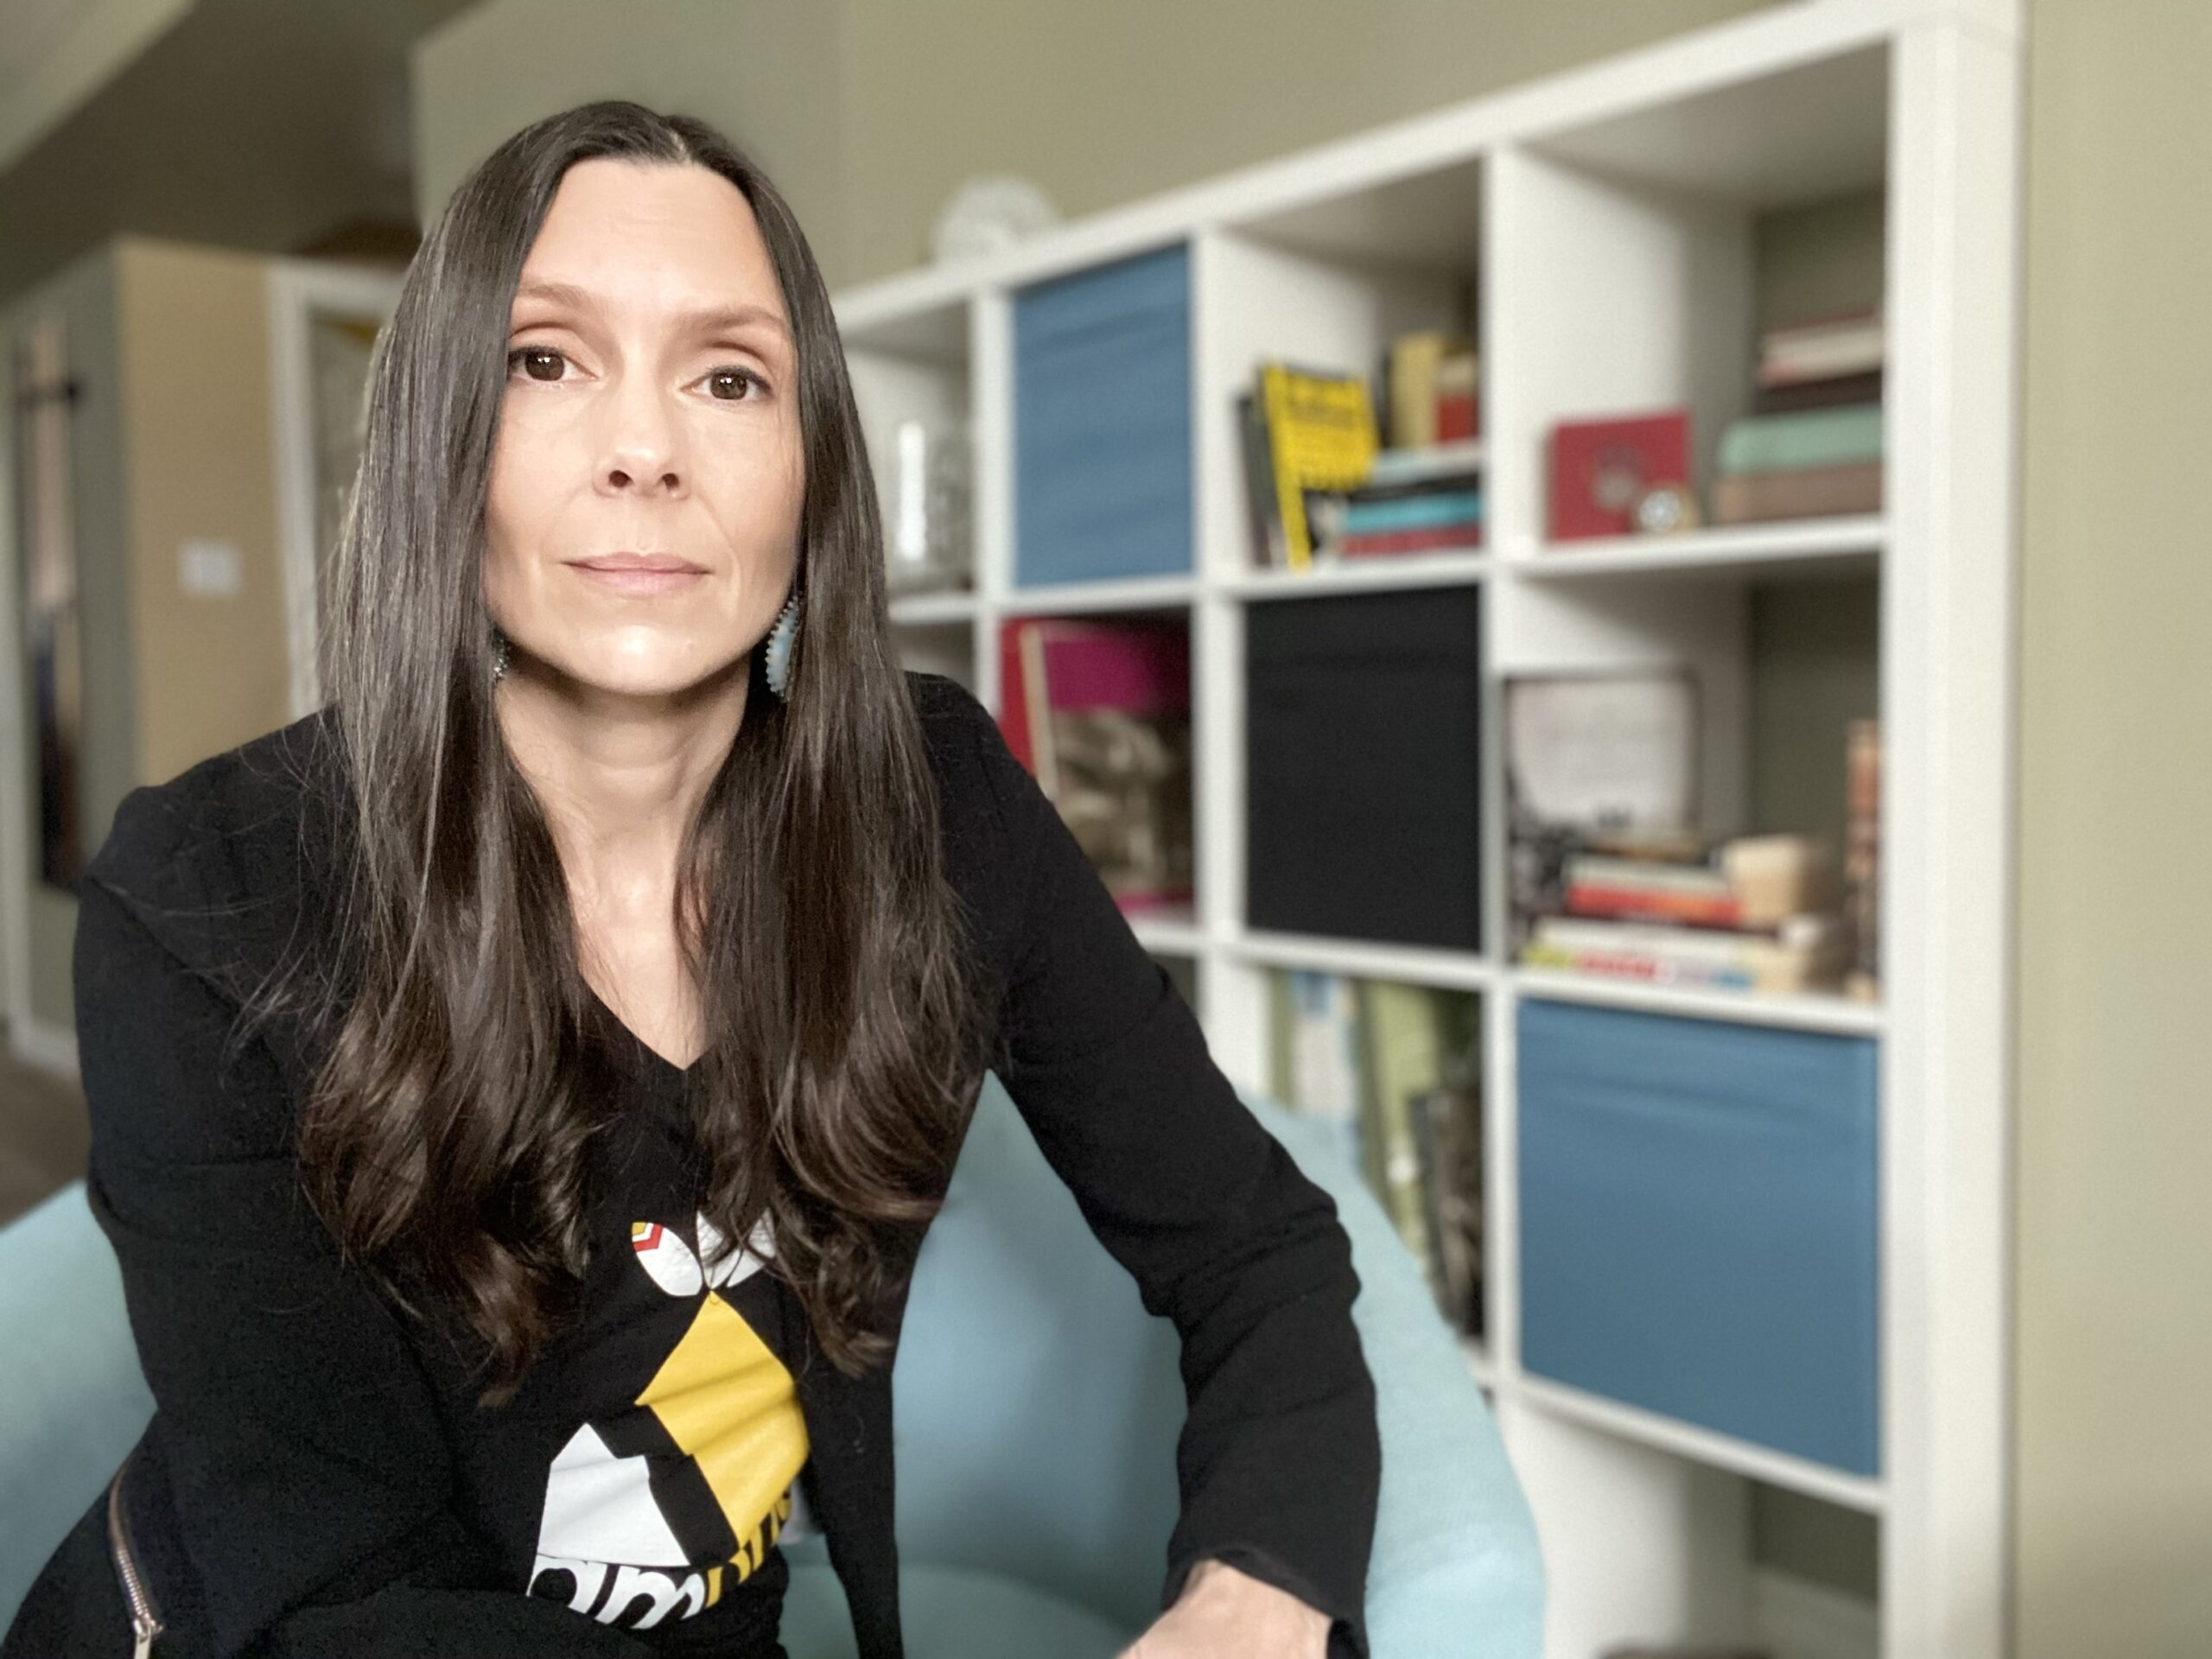 Storytelling in the Media from the Indigenous Perspective - IN PERSON